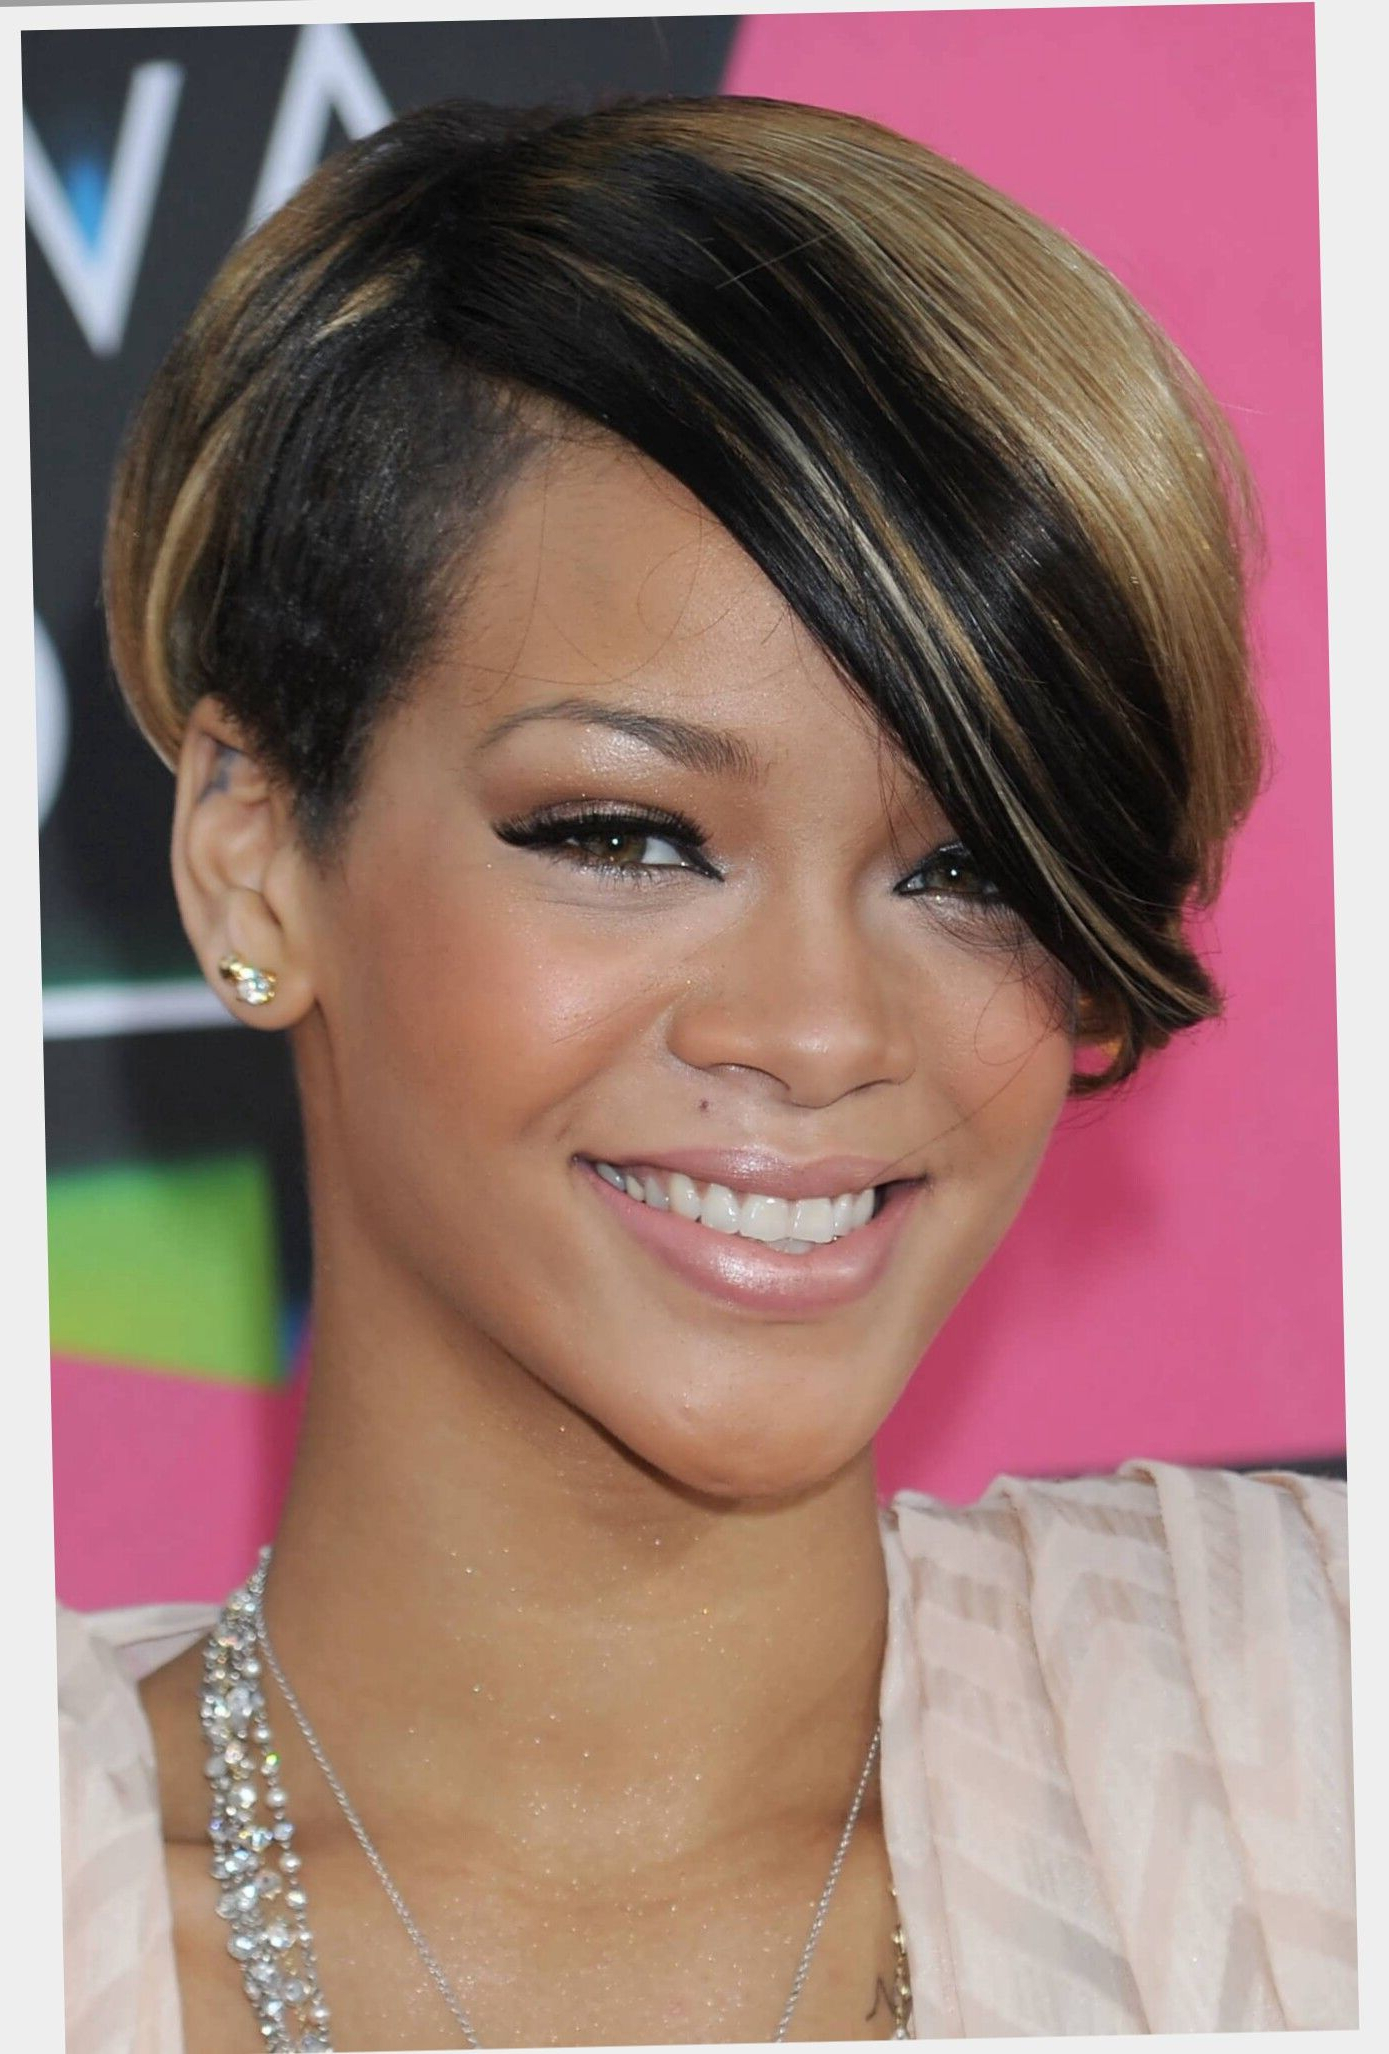 Pinnadine Crewe Morant On Short Hair Don't Care | Pinterest For Short Haircuts For Round Faces Black Women (View 13 of 25)